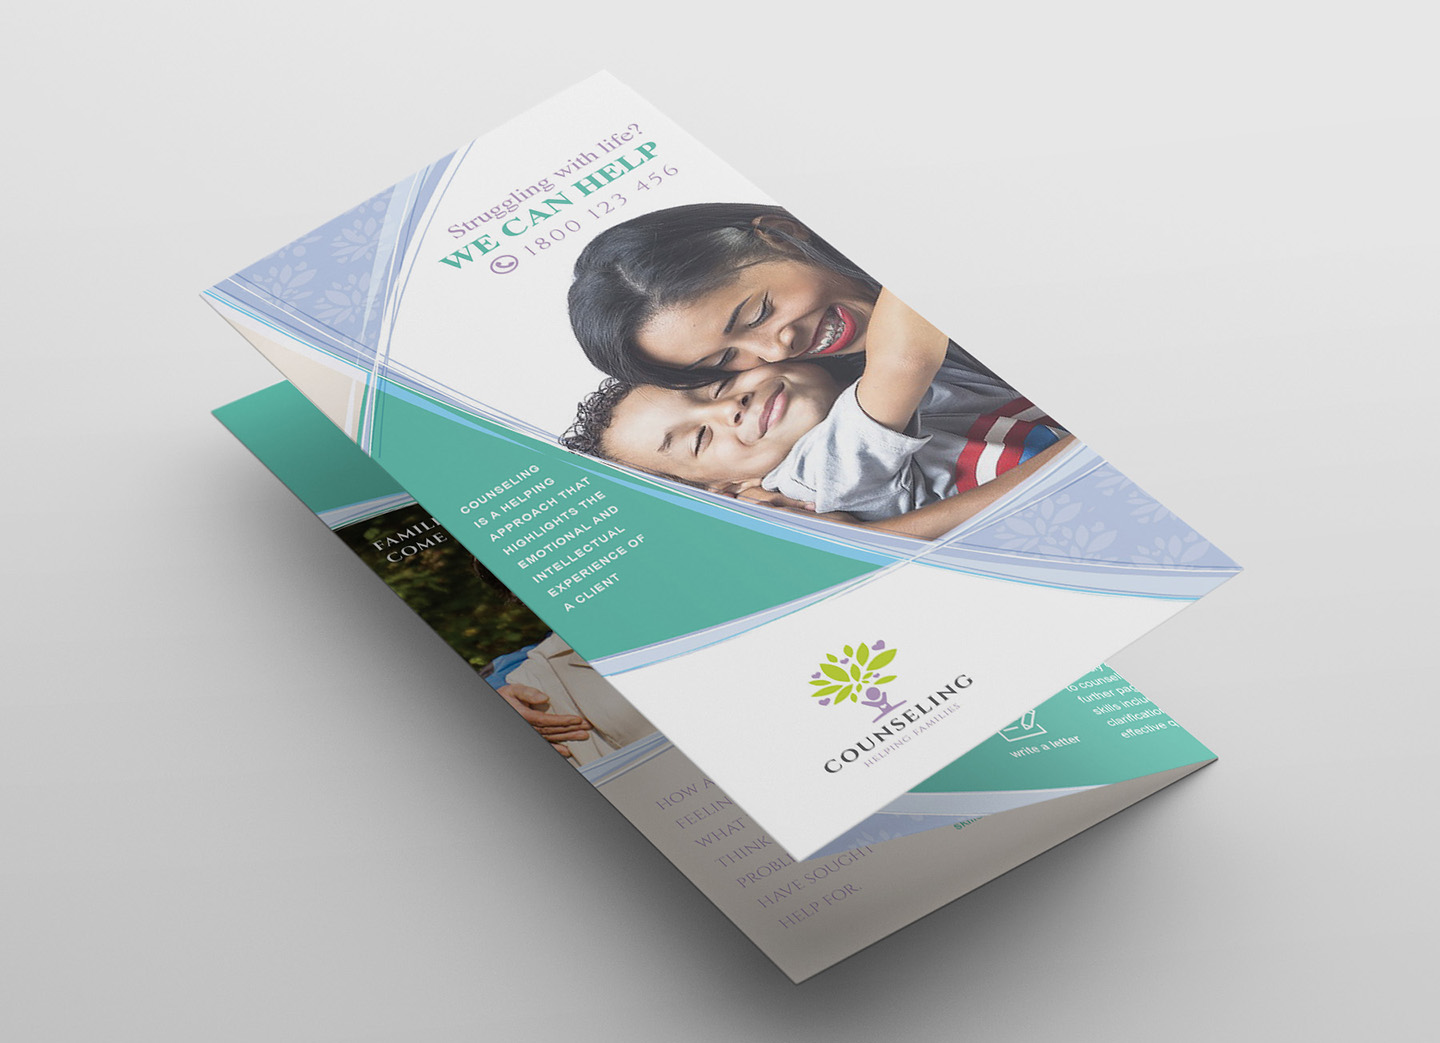 Counselling Service Tri-Fold Brochure Template example image 3